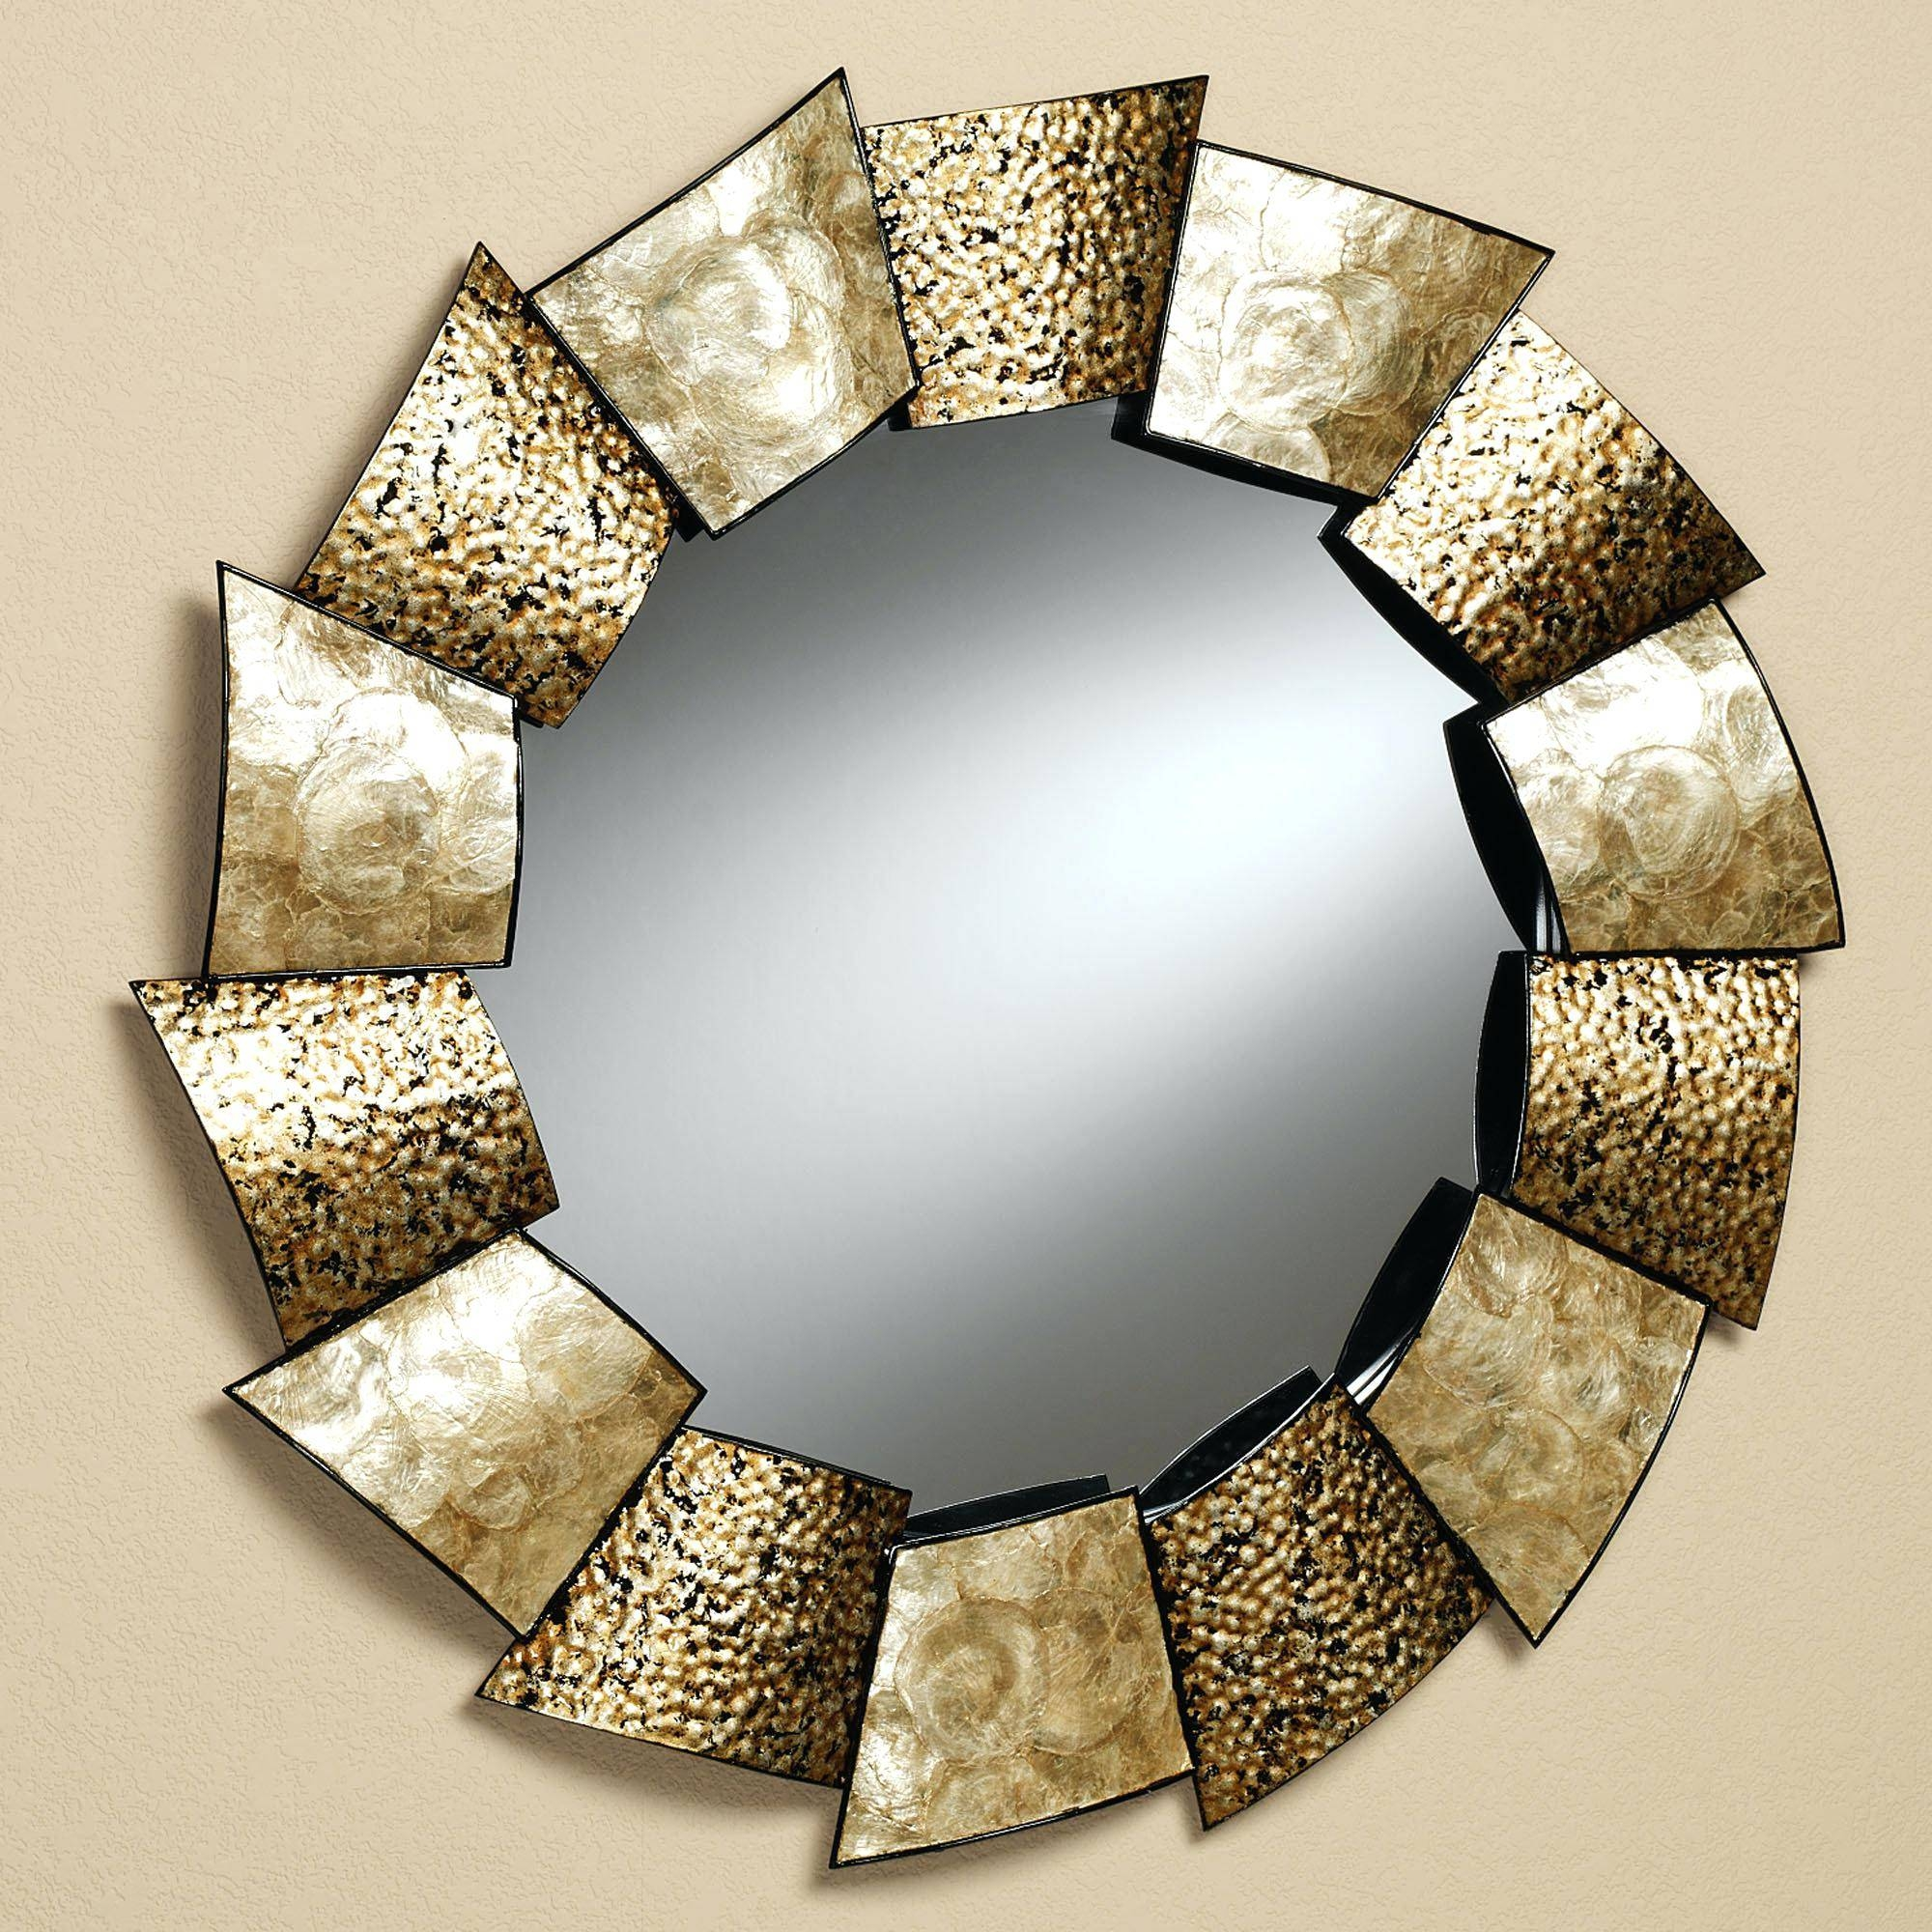 12 Unique Wall Mirror Designs To Decorate Your Home Withunique with Unique Mirrors (Image 3 of 25)